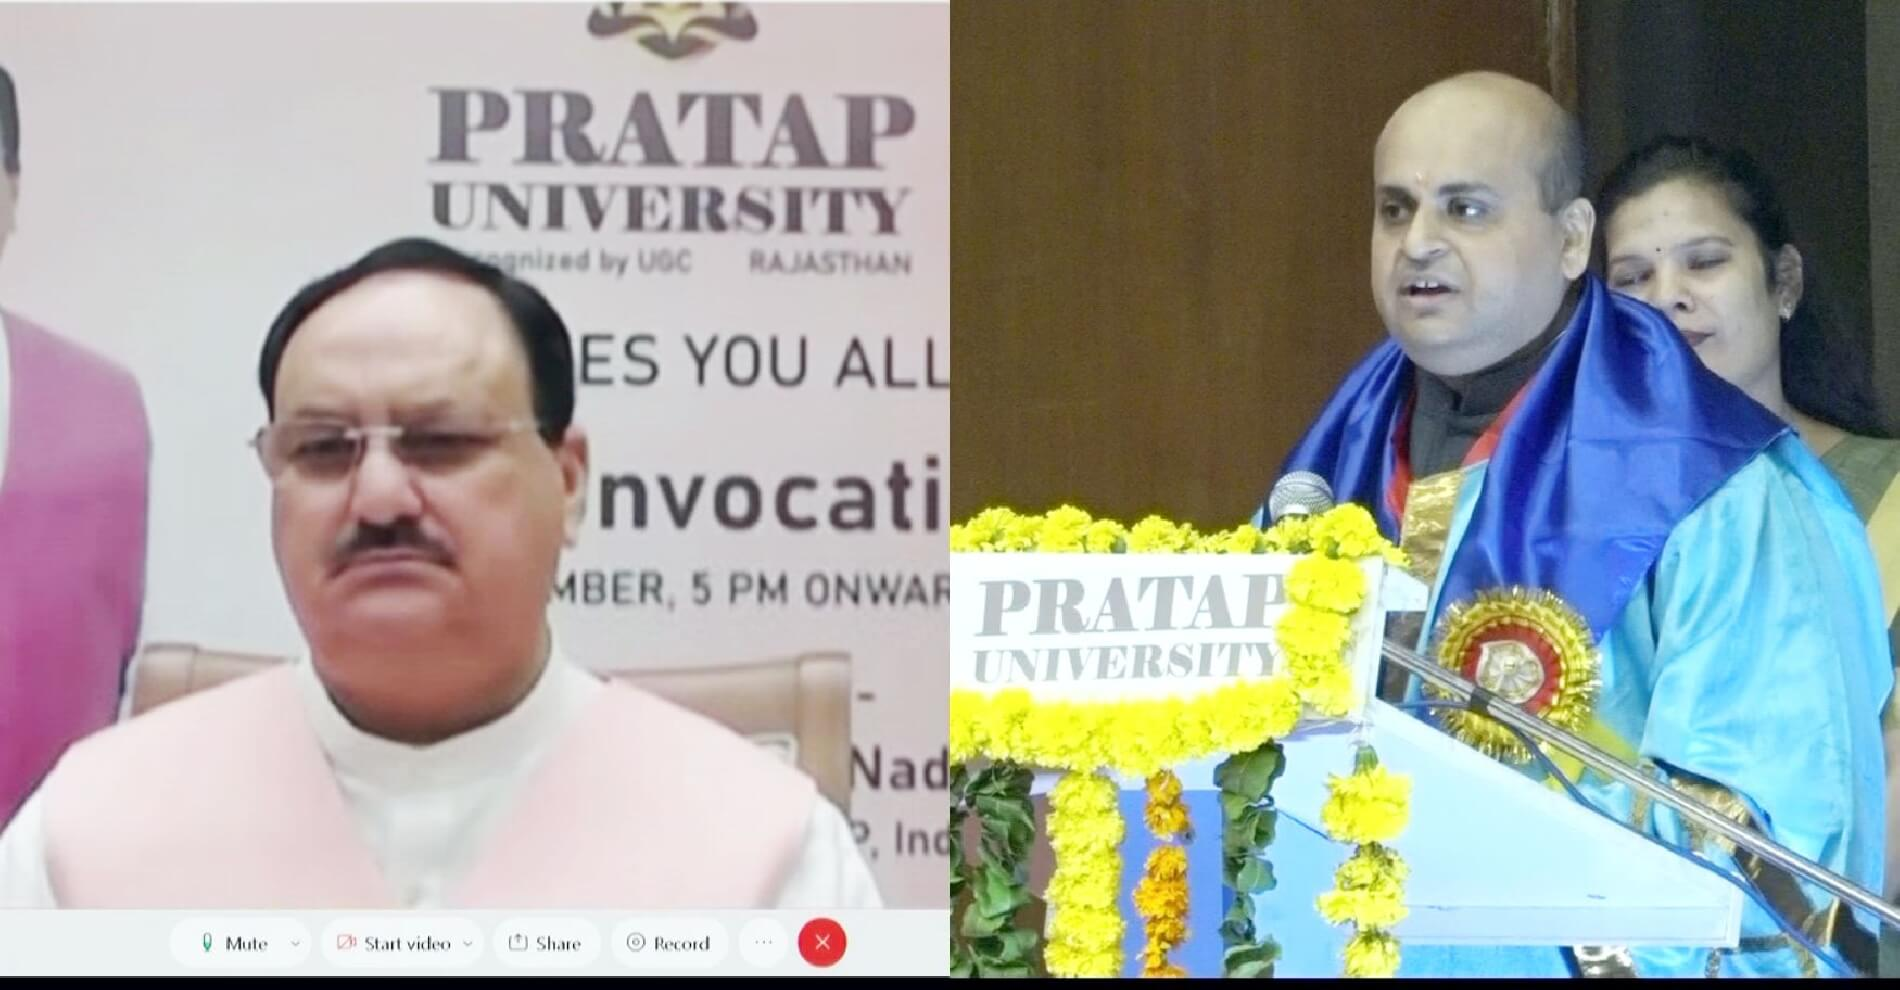 Shailendra Bhadauria Chairman at  Pratap University